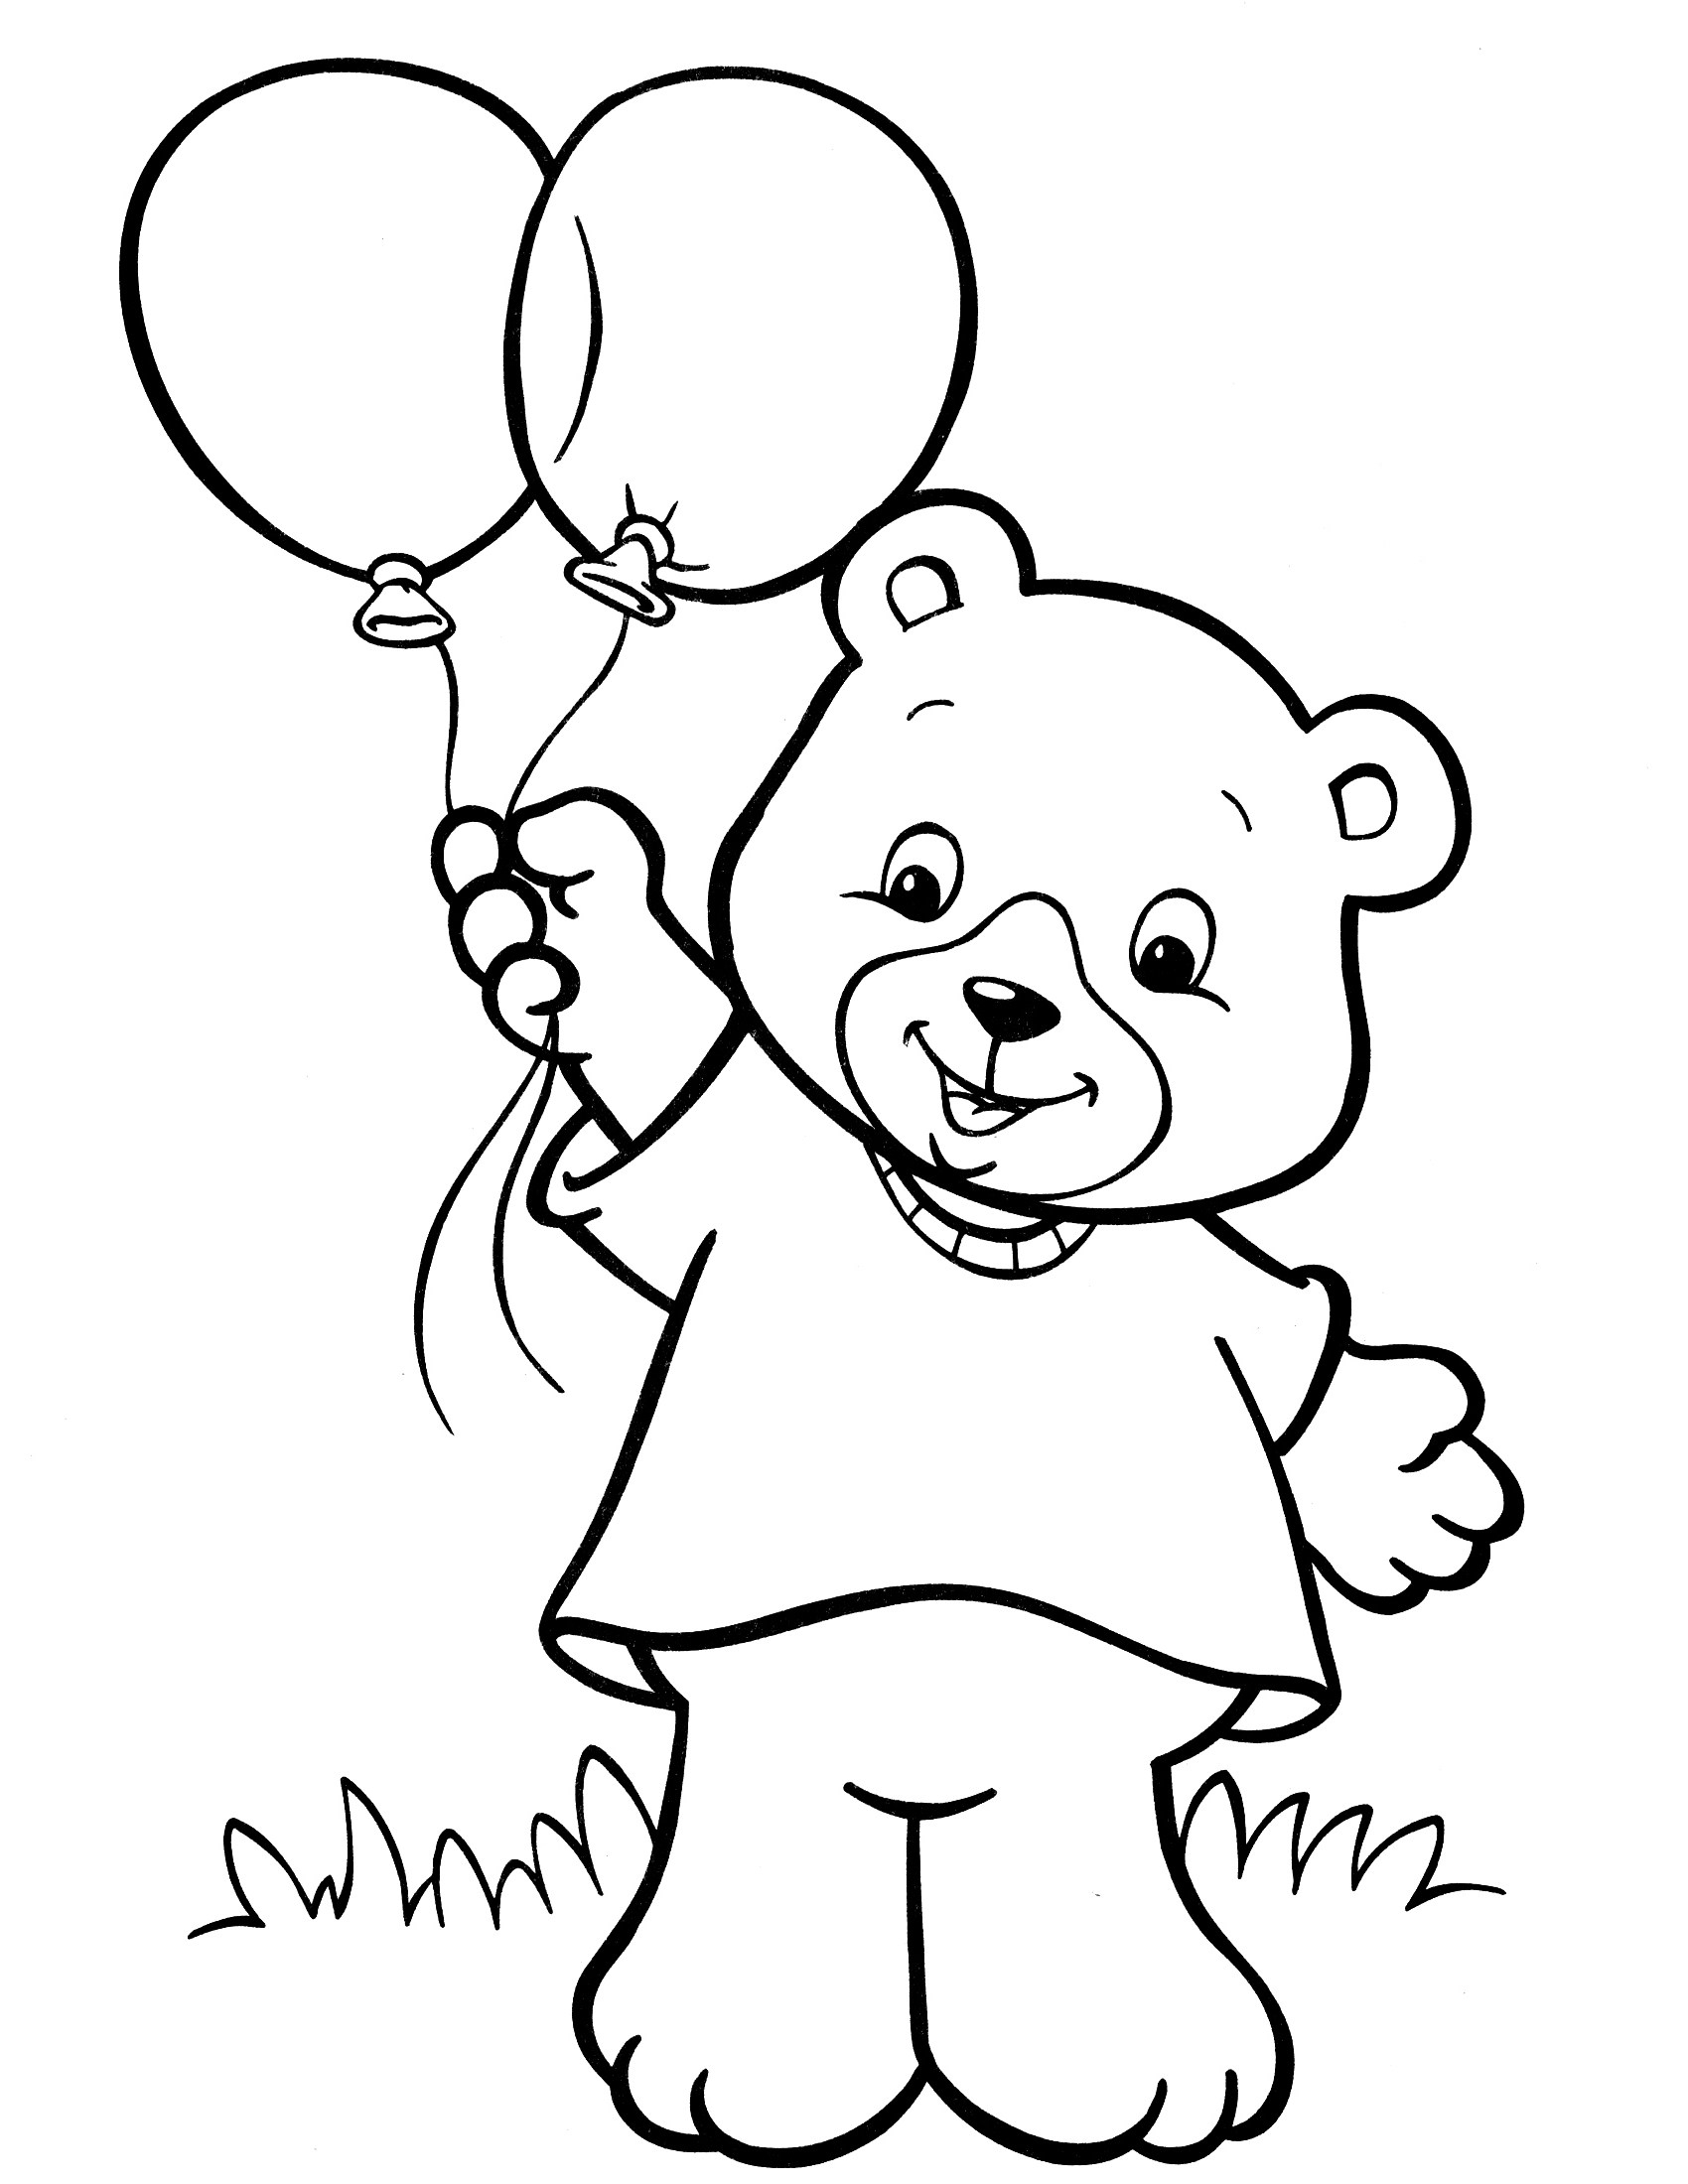 √ Coloring Activity For 2 Years Old | Worksheets For 2 Years Olds - Free Printable Coloring Pages For 2 Year Olds